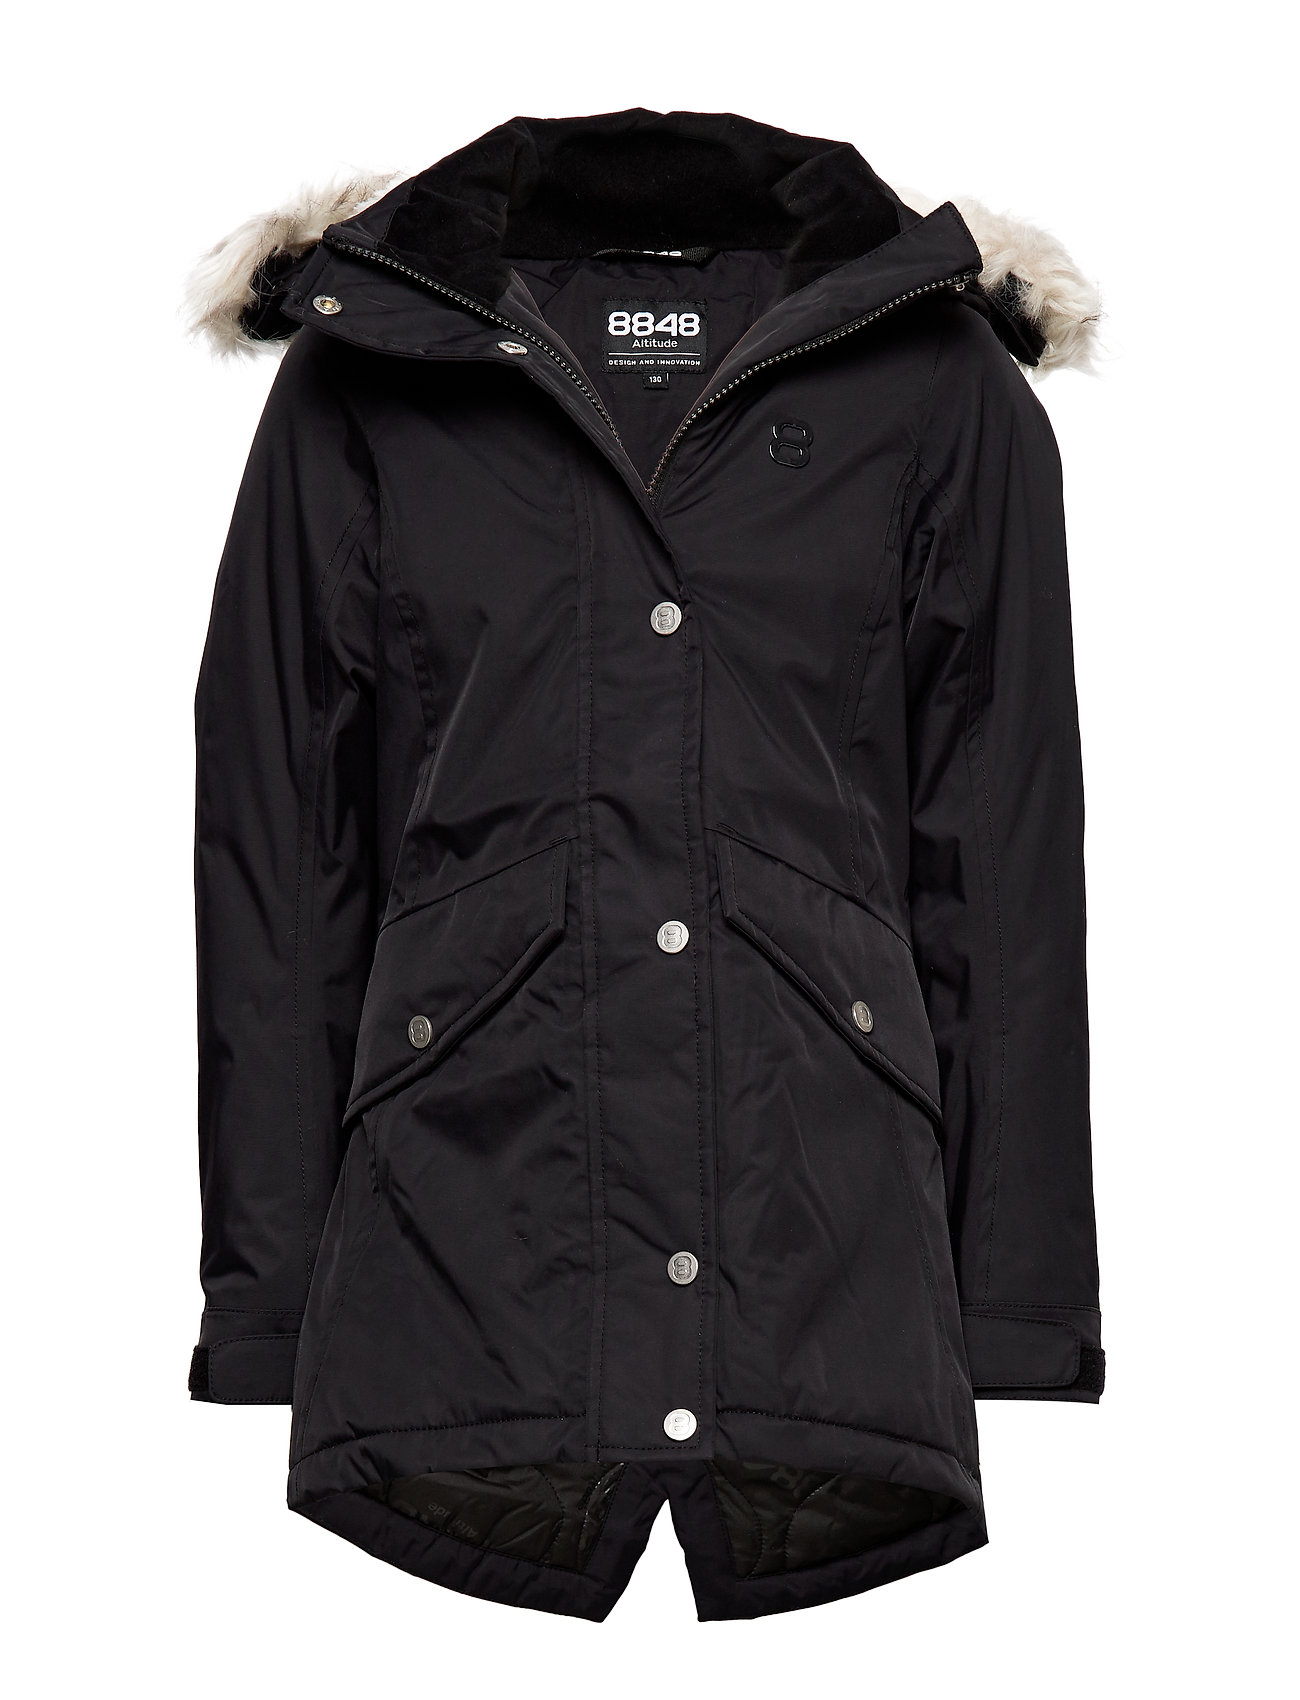 8848 Altitude Maltese JR Jacket - BLACK